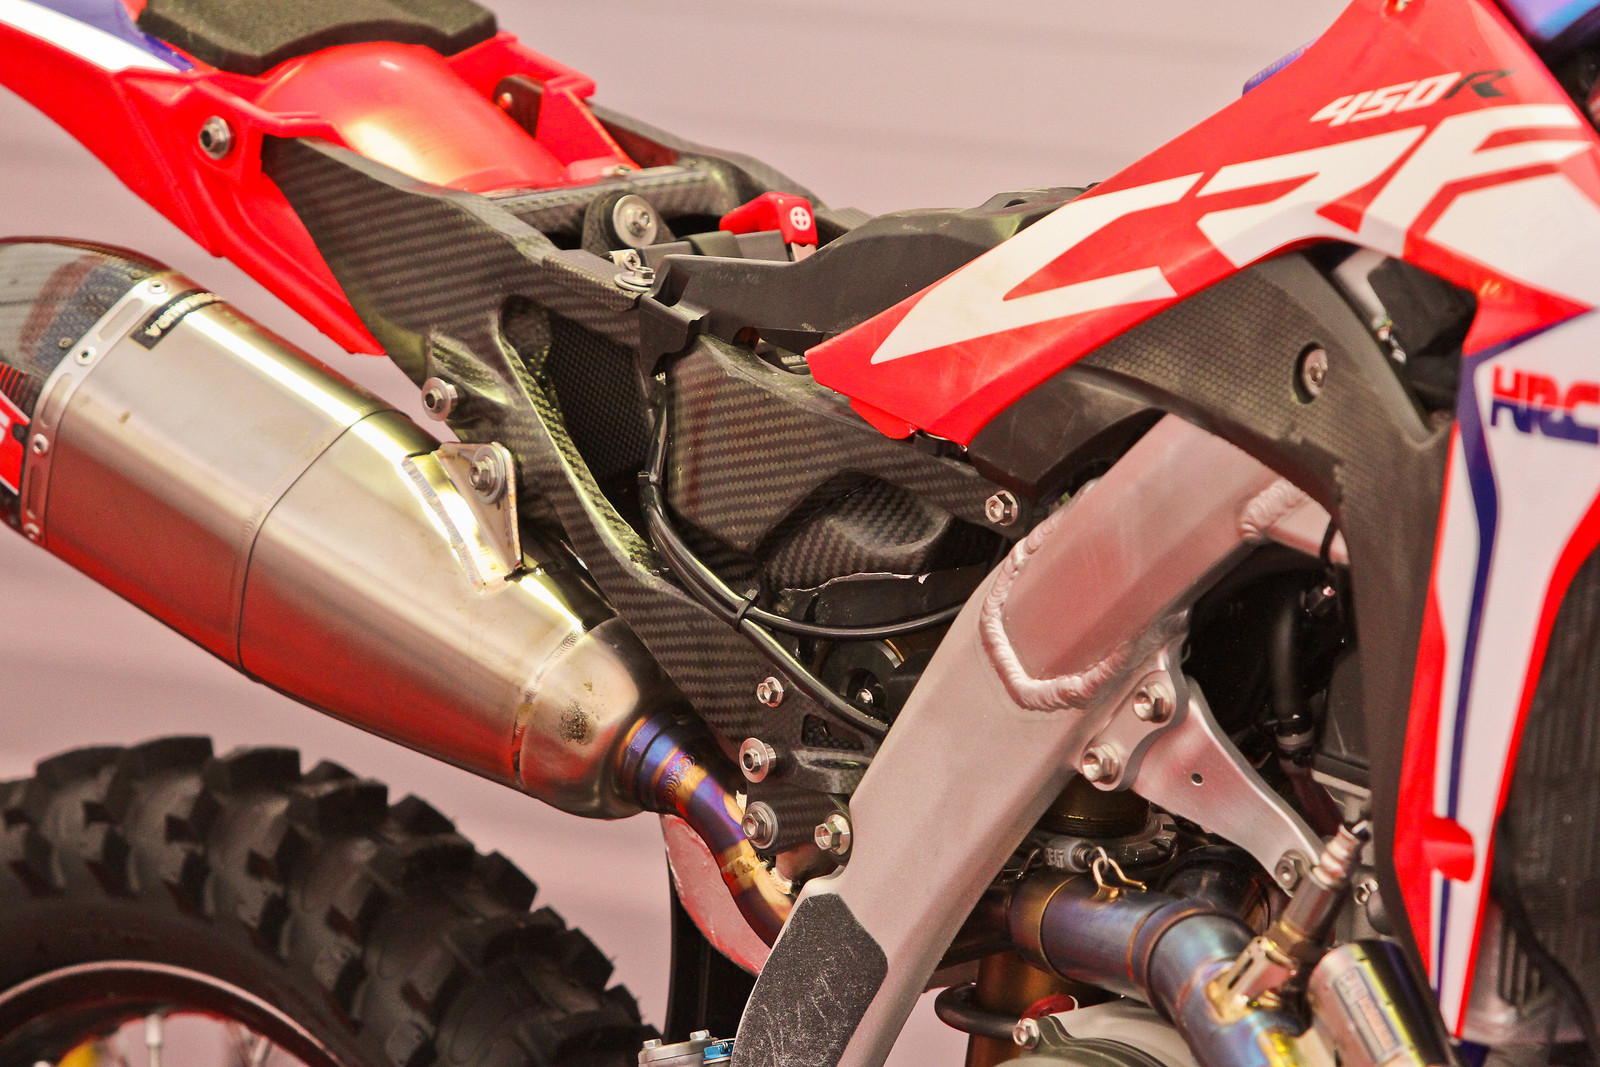 Carbon subframe/airbox Honda CR450F - ayearinmx - Motocross Pictures - Vital MX